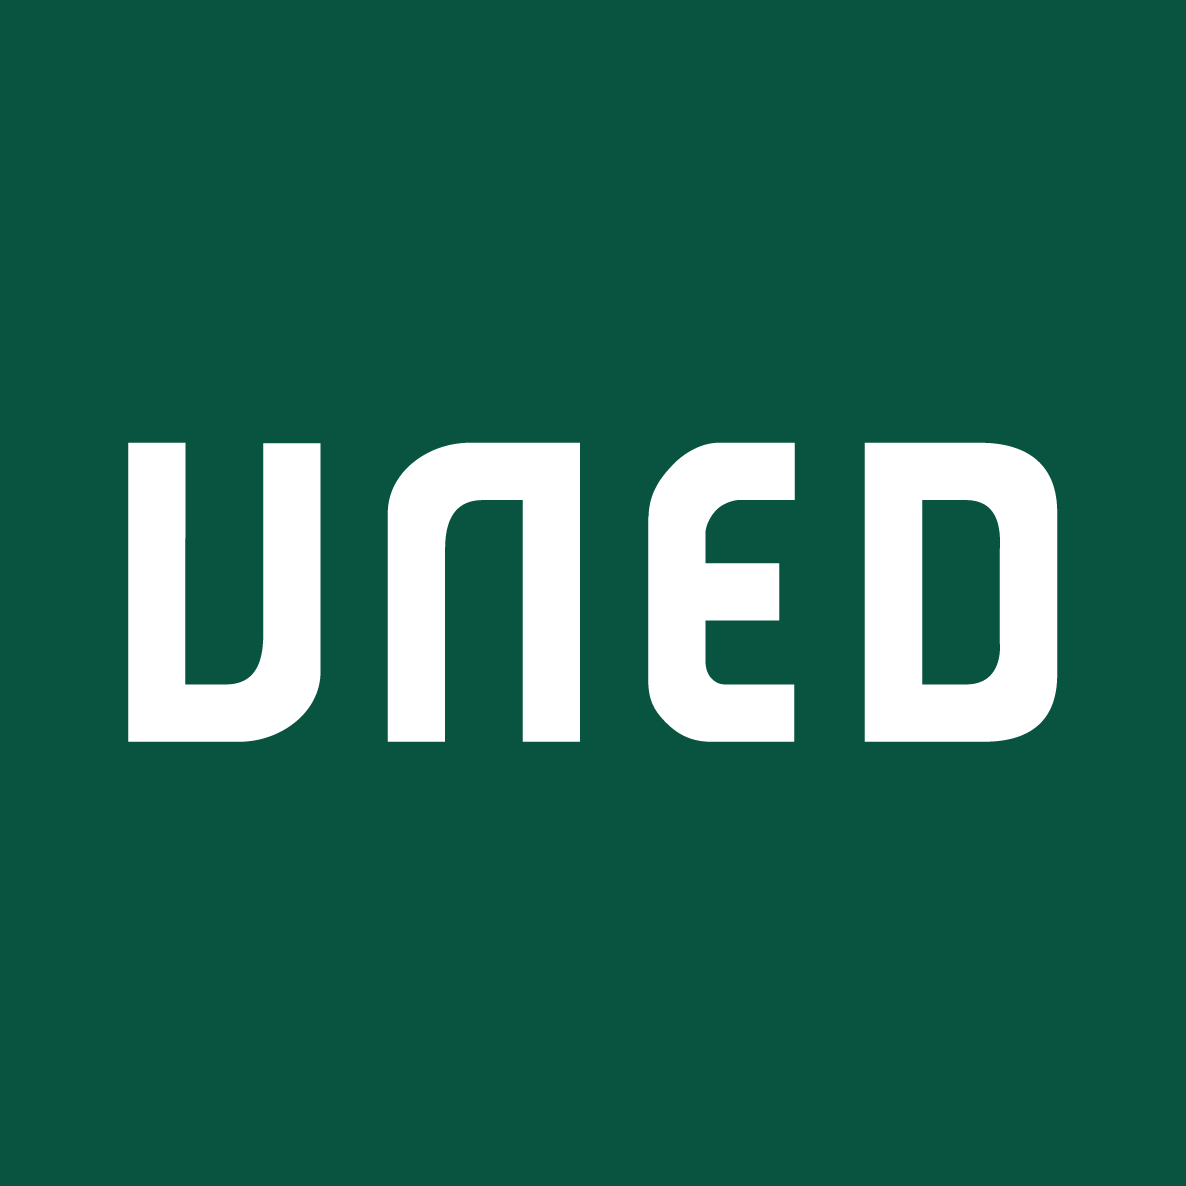 UNED Logo [National University of Distance Education] png